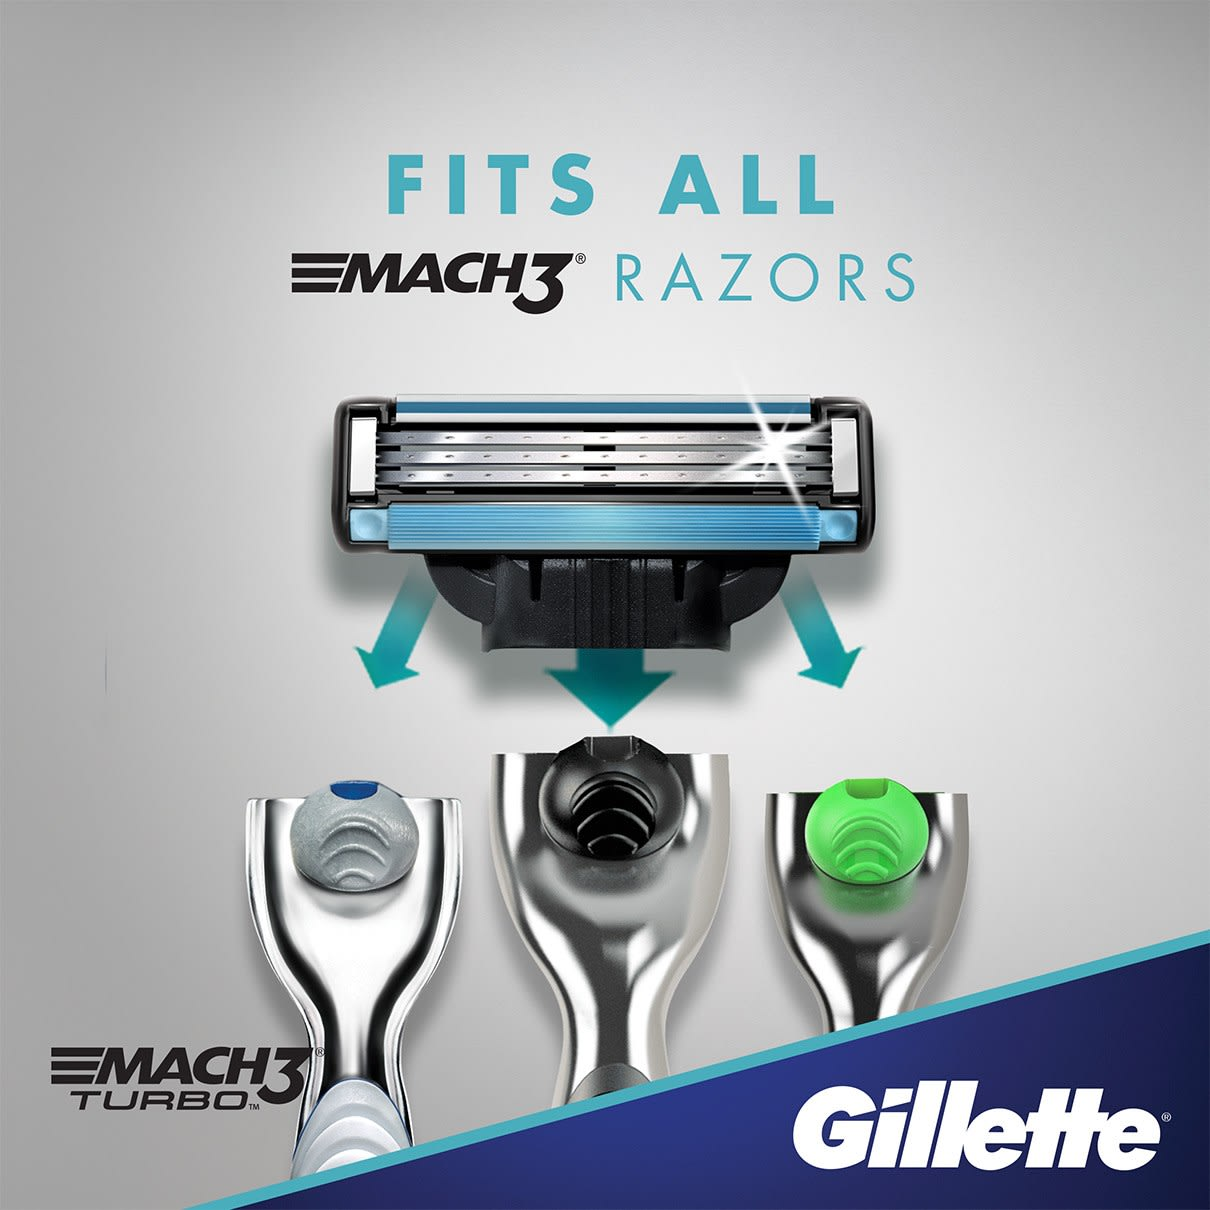 Fits all Mach3 razors